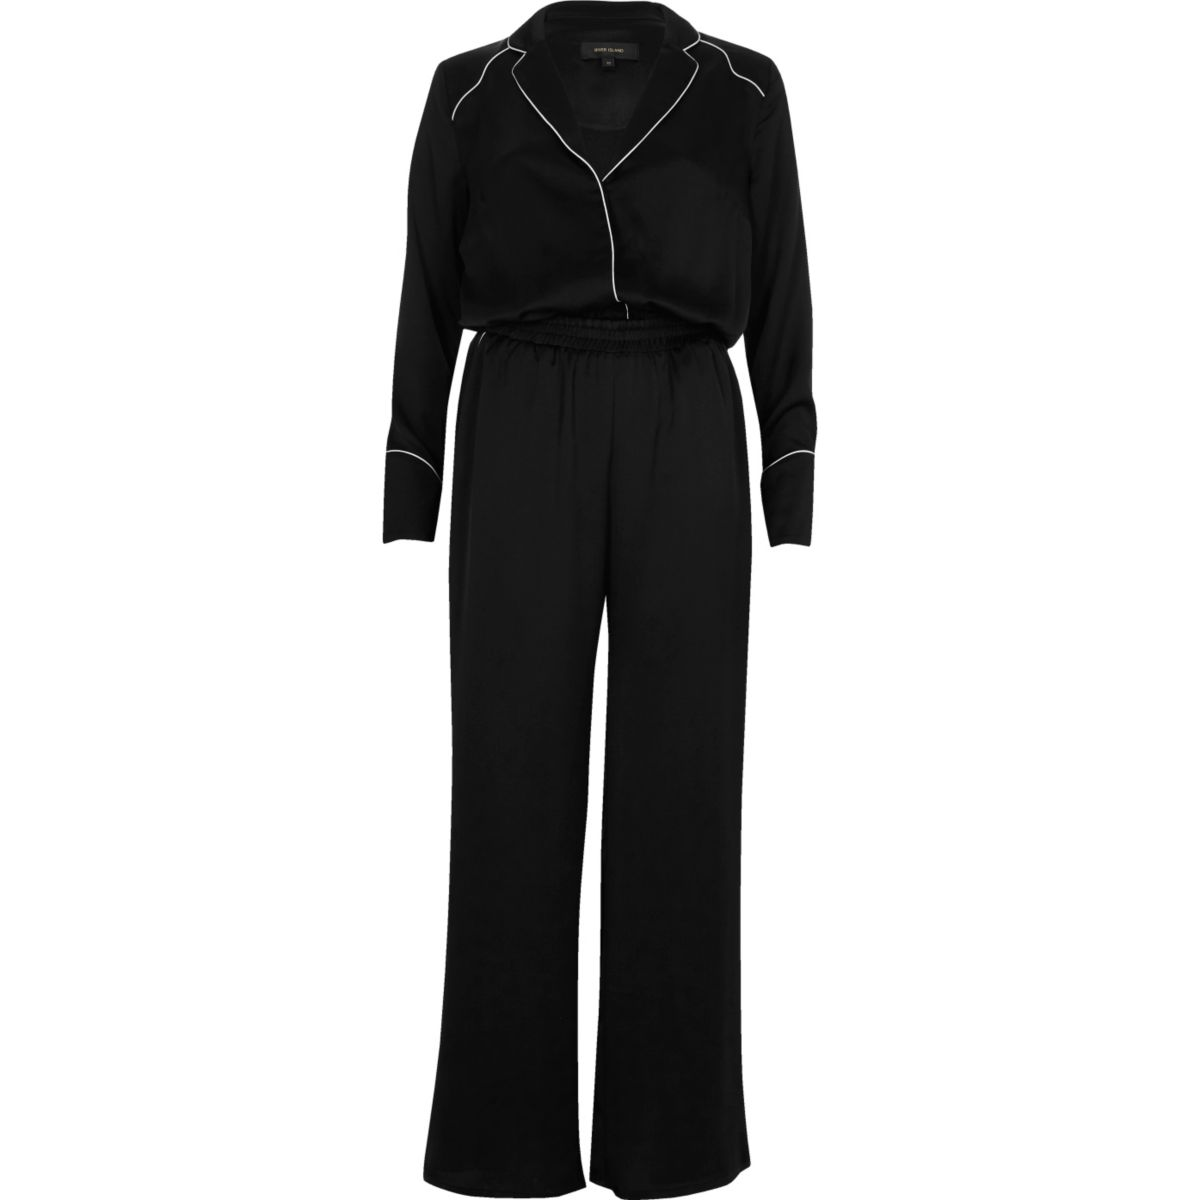 Black satin relaxed jumpsuit